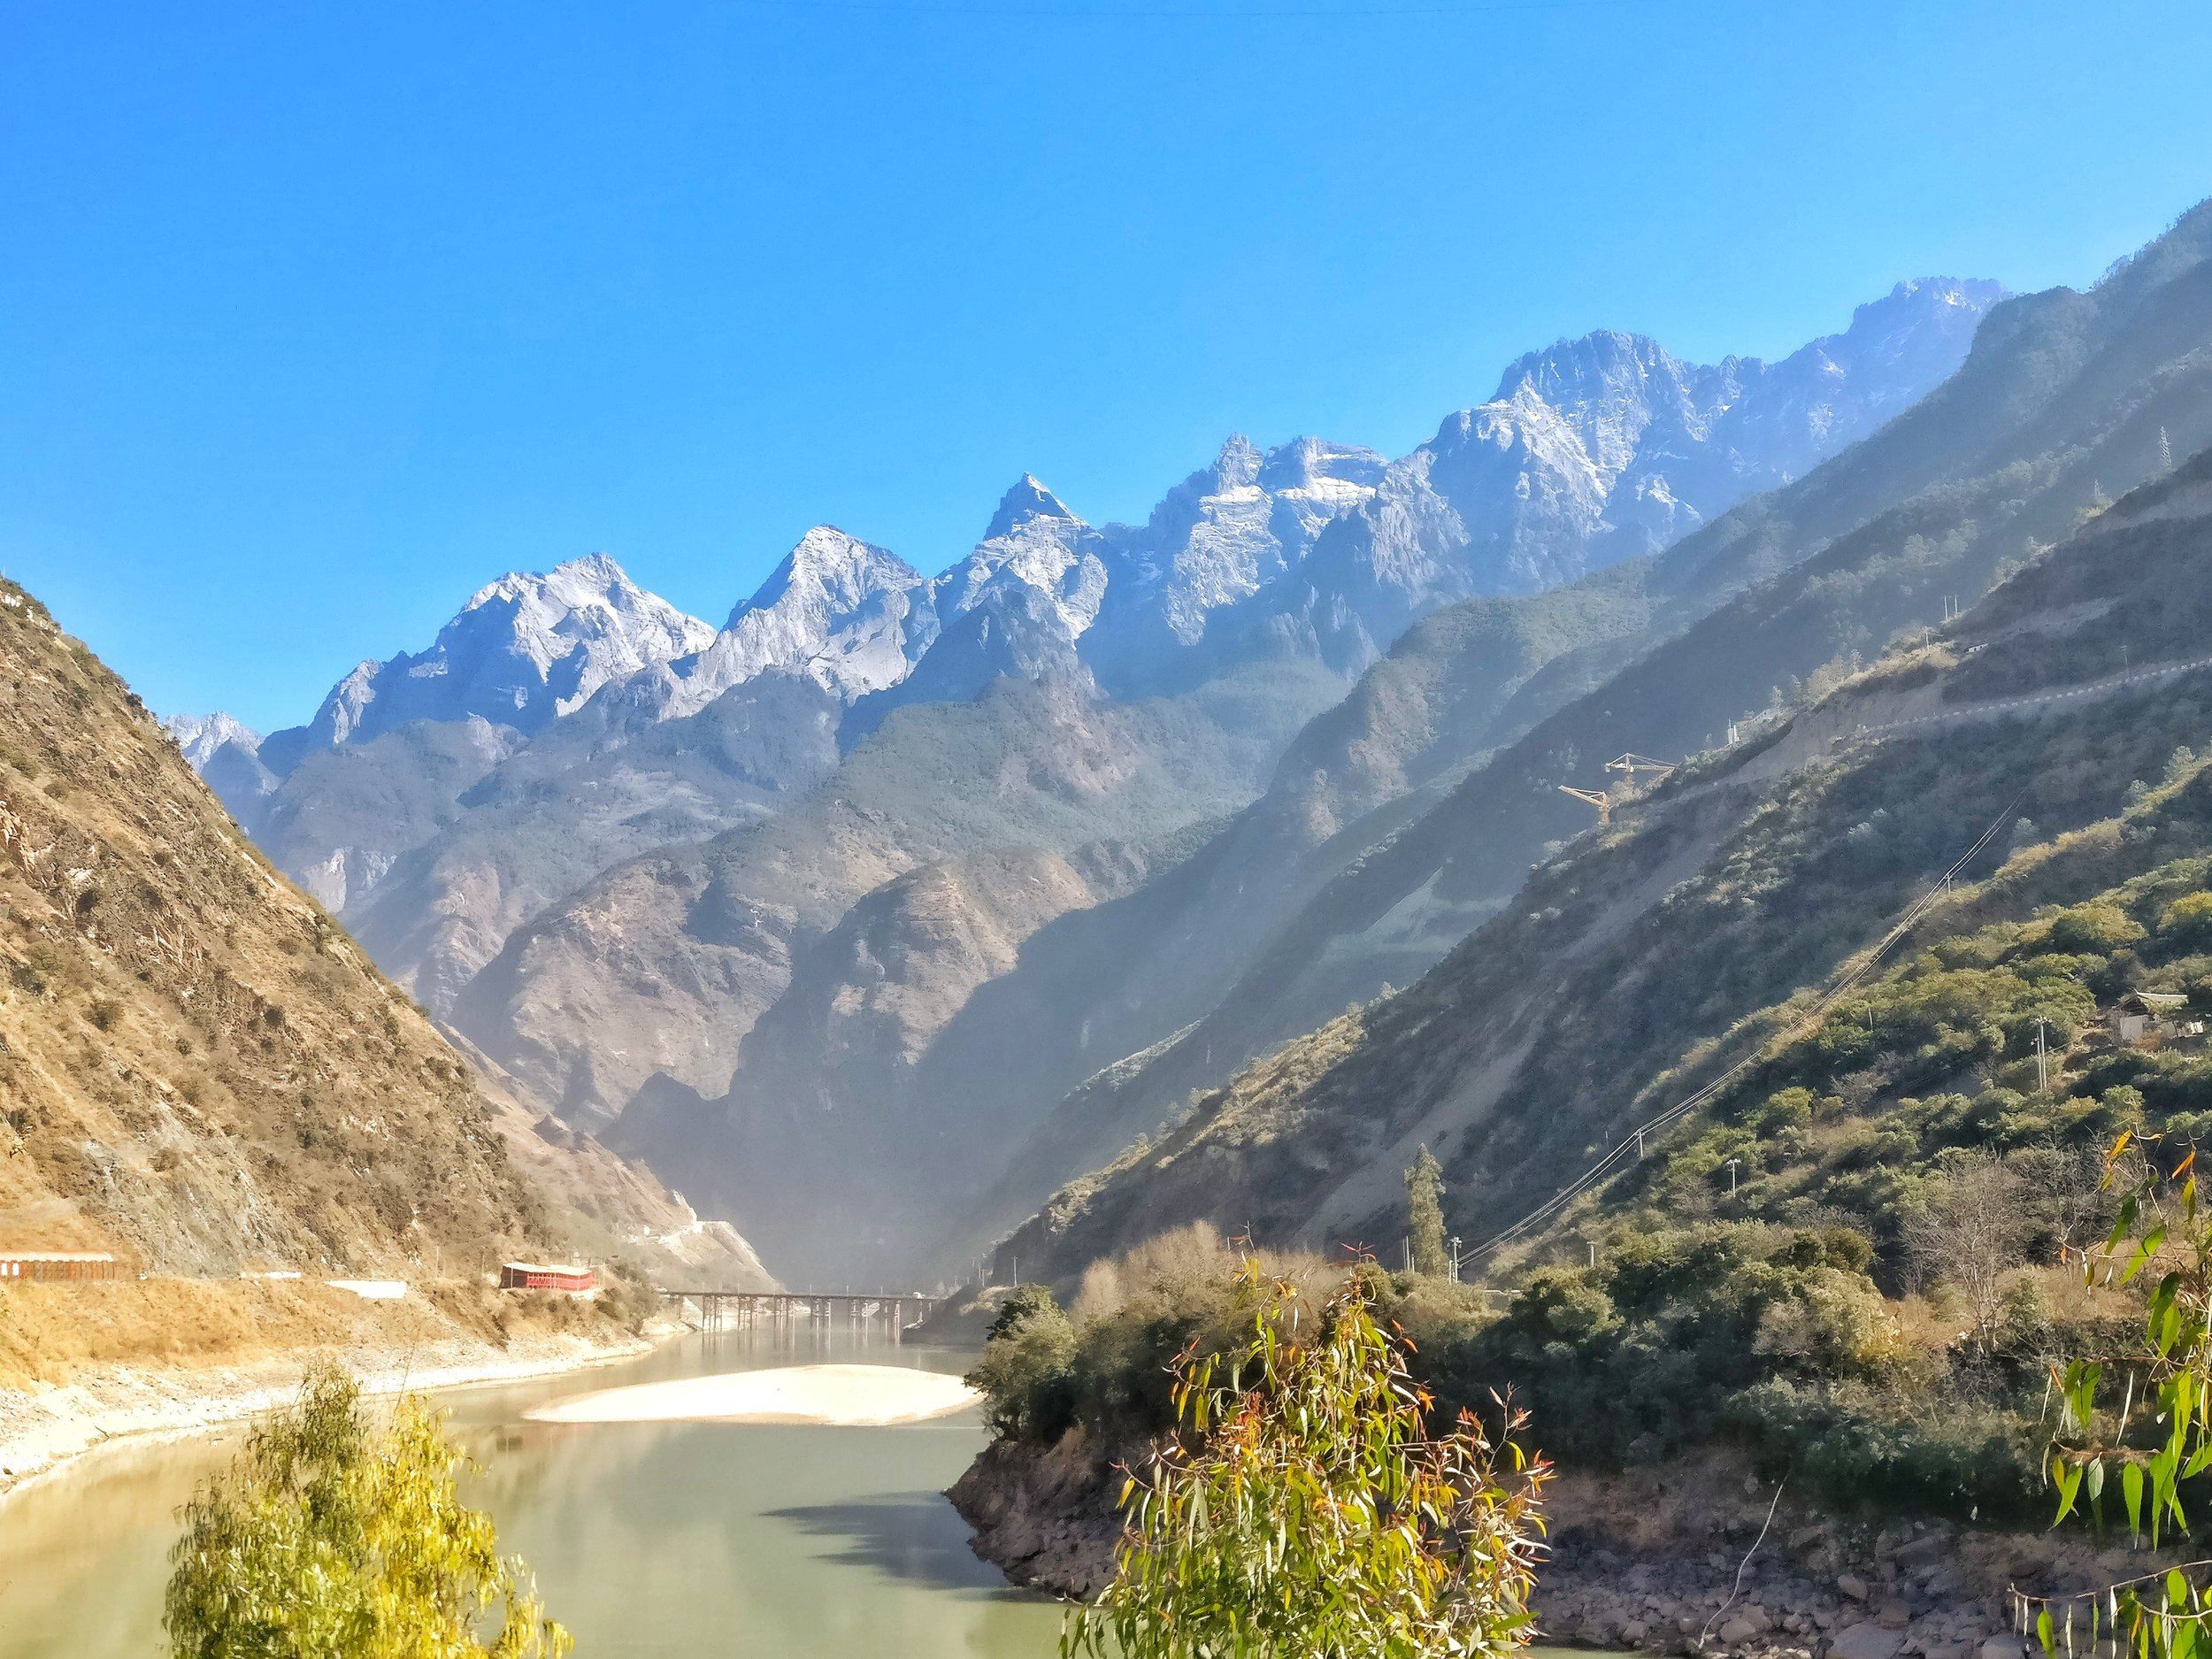 The point at which the Jinsha or the Upper Yangtze enters the Tiger Leaping Gorge under the shadow of the Haba Snow Mountain, Tiger Leaping Gorge, Yunnan